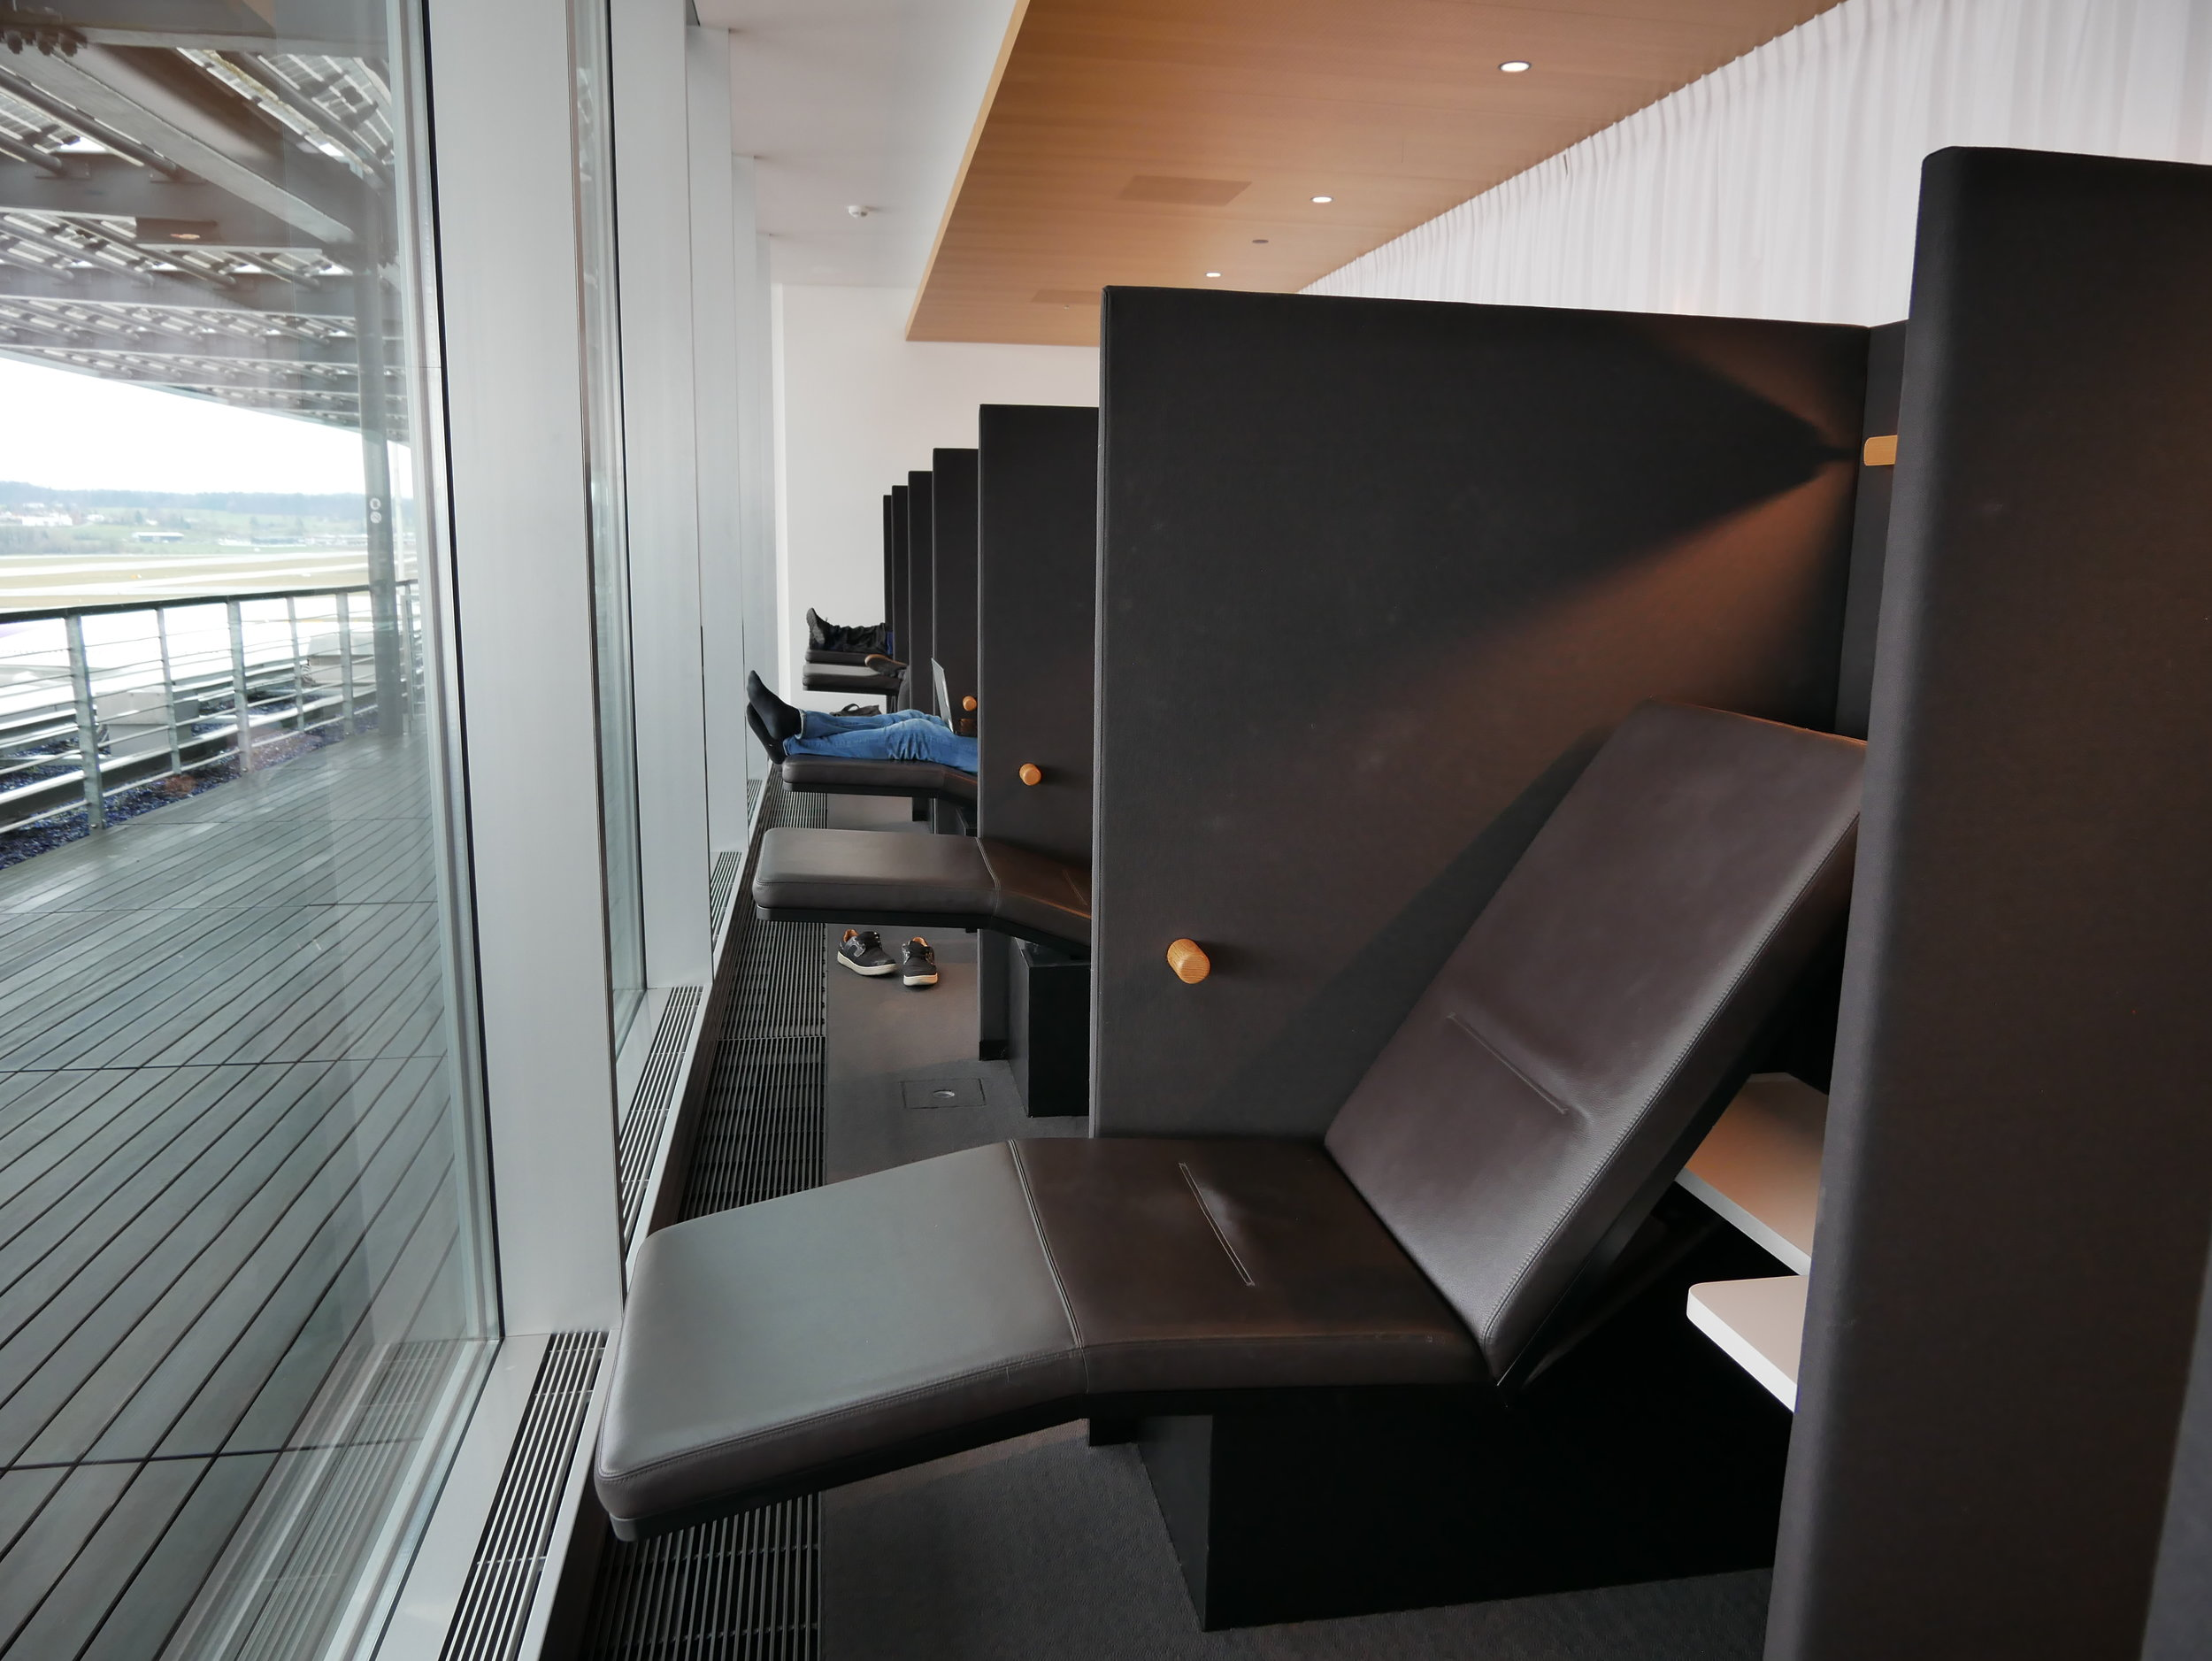 ZRH Senator Lounge E Gates rest area